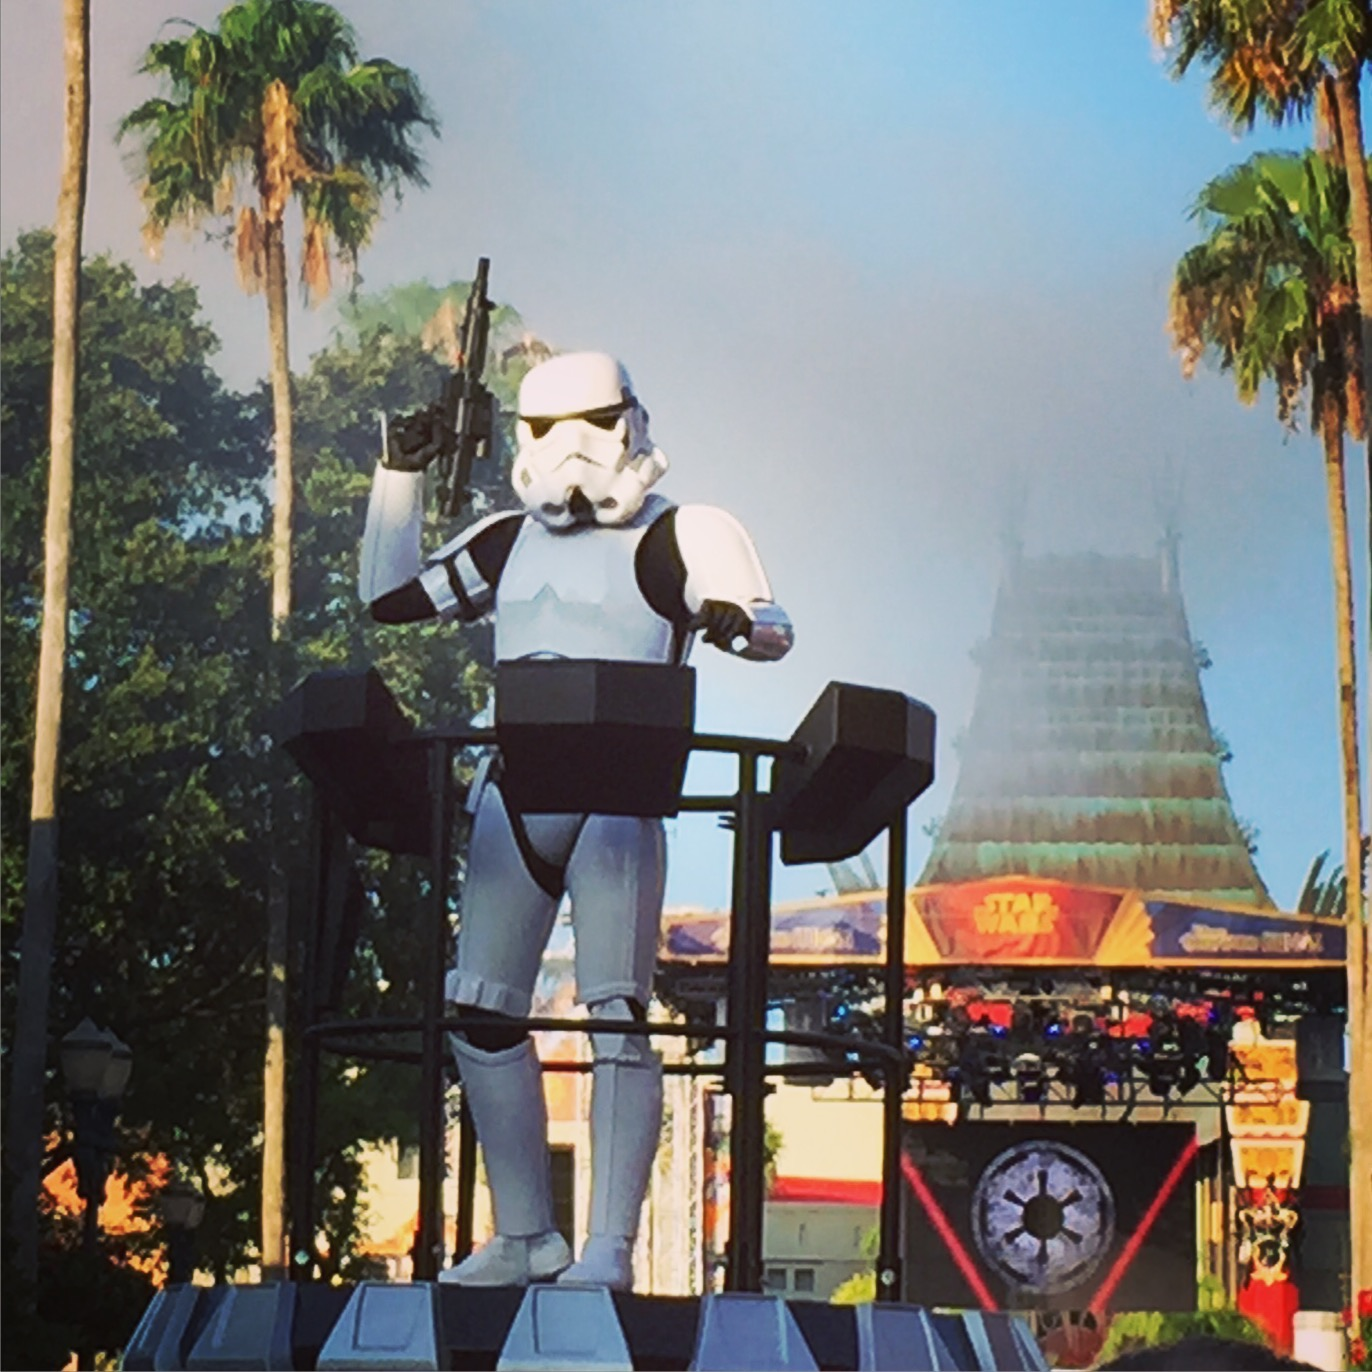 Stormtroopers welcome visitors to Star Wars Weekends